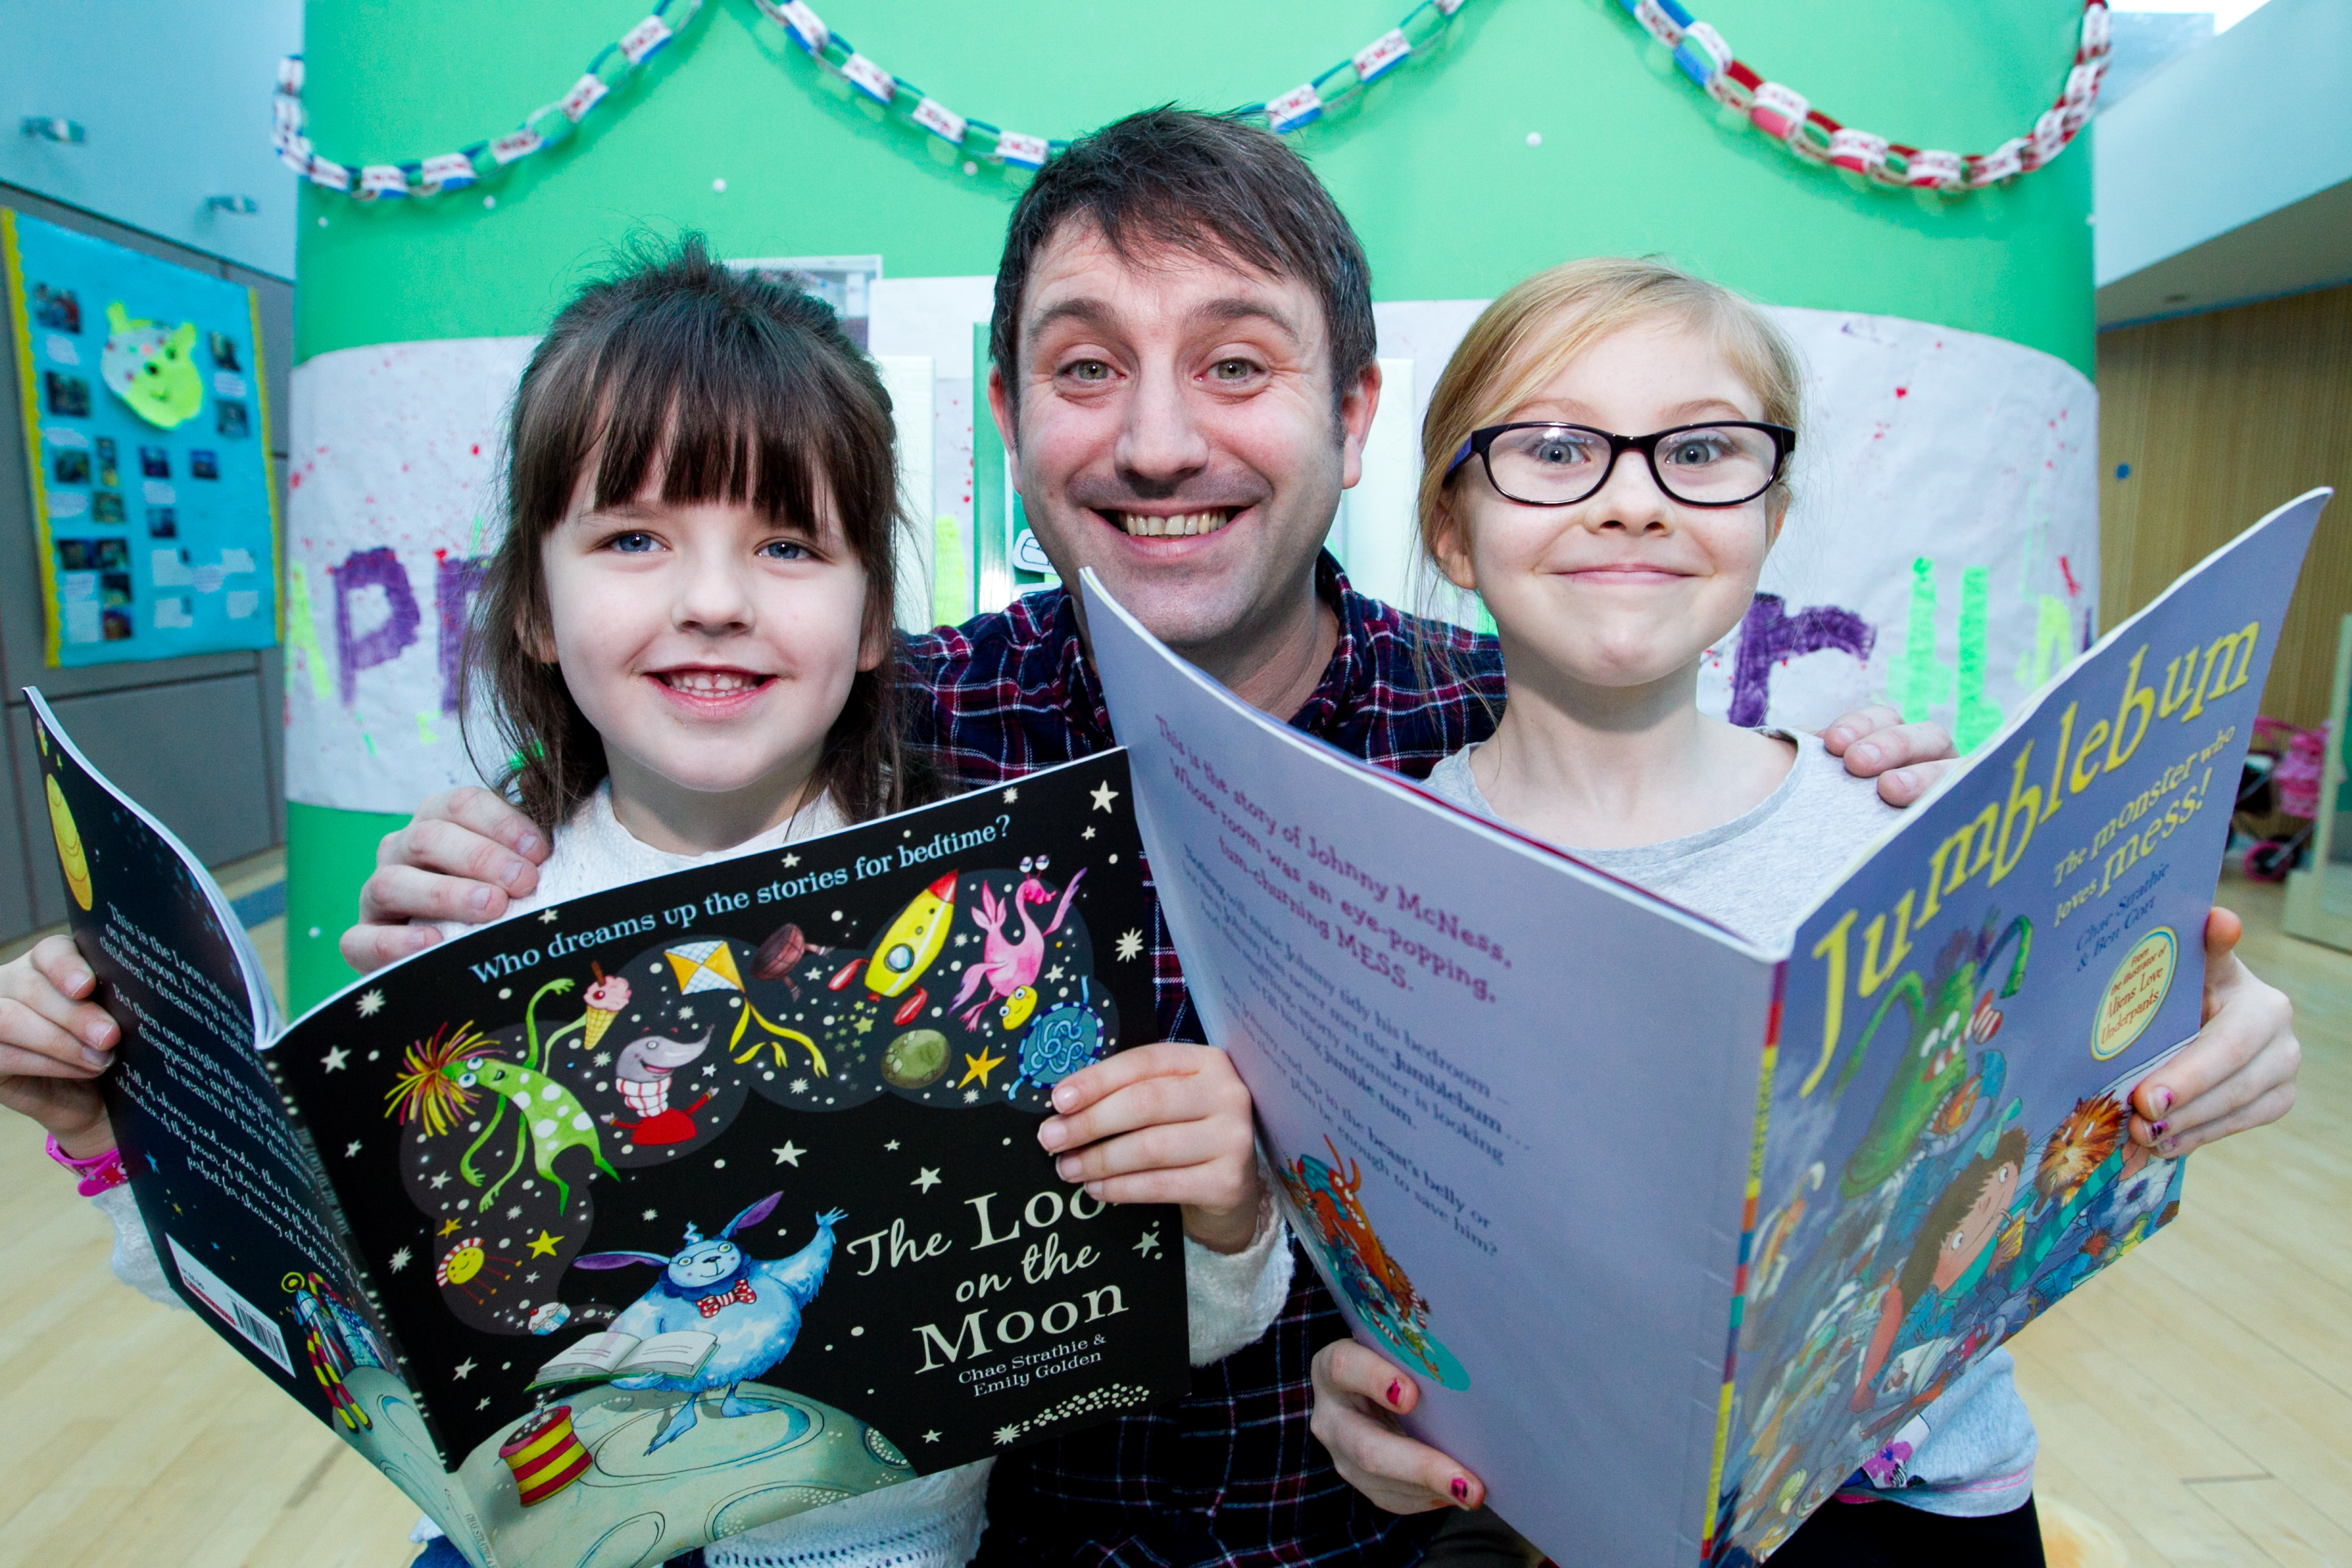 Chae with Holly and Olivia at Robin House (Andrew Cawley / DC Thomson)